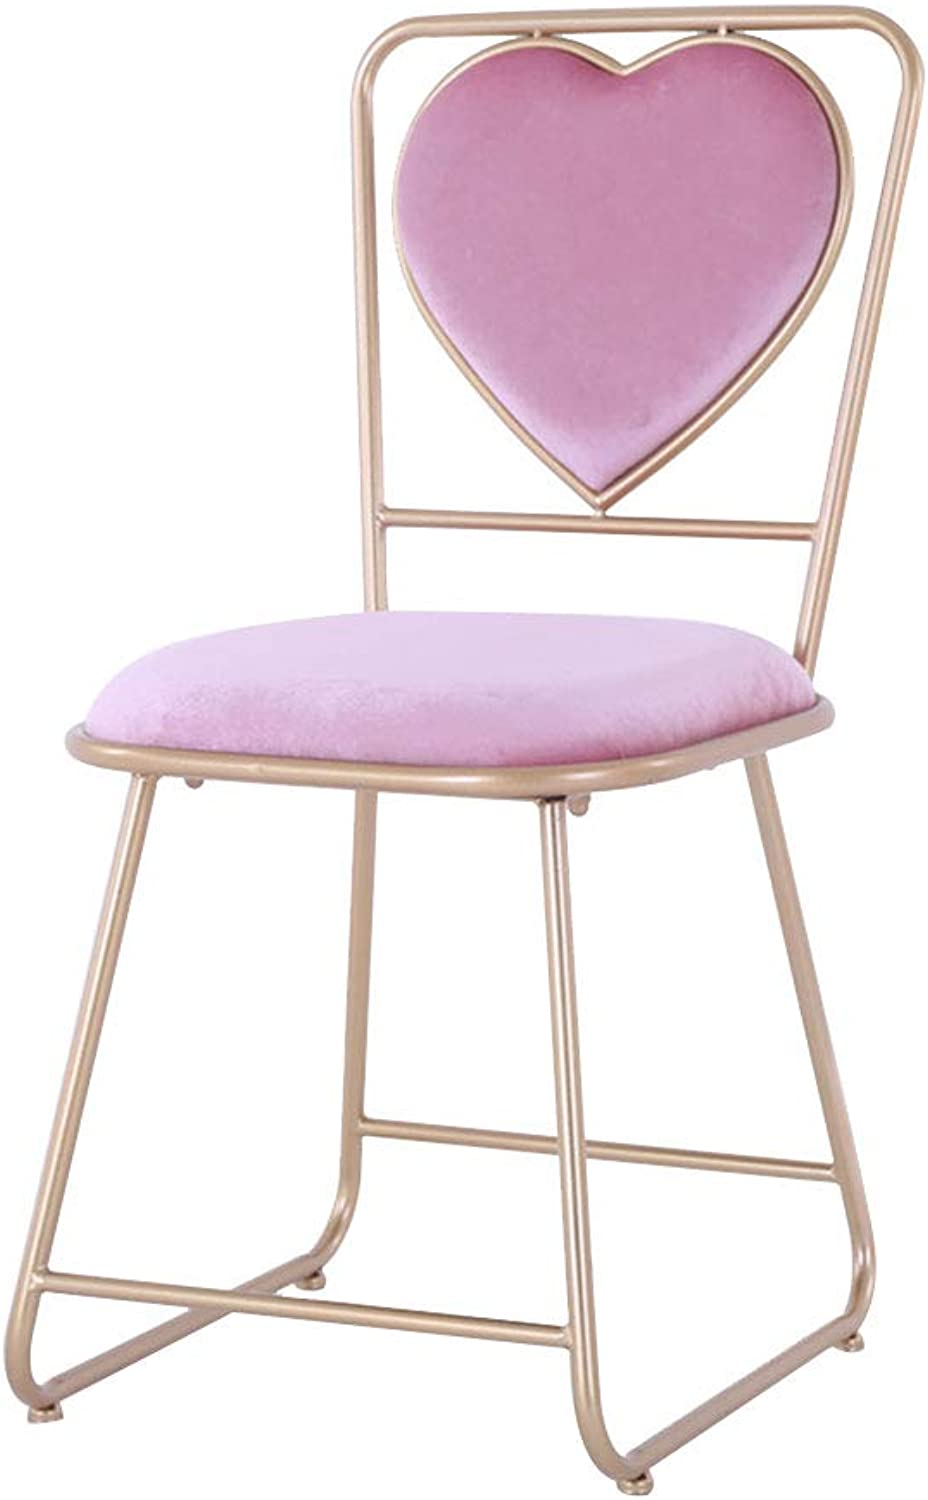 Casual Dining Chair Wrought Iron Chair, High Rebound Sponge Cushion, No Armrests, Suitable for Dining Room Living Room, Pink (38 × 45 × 82cm)